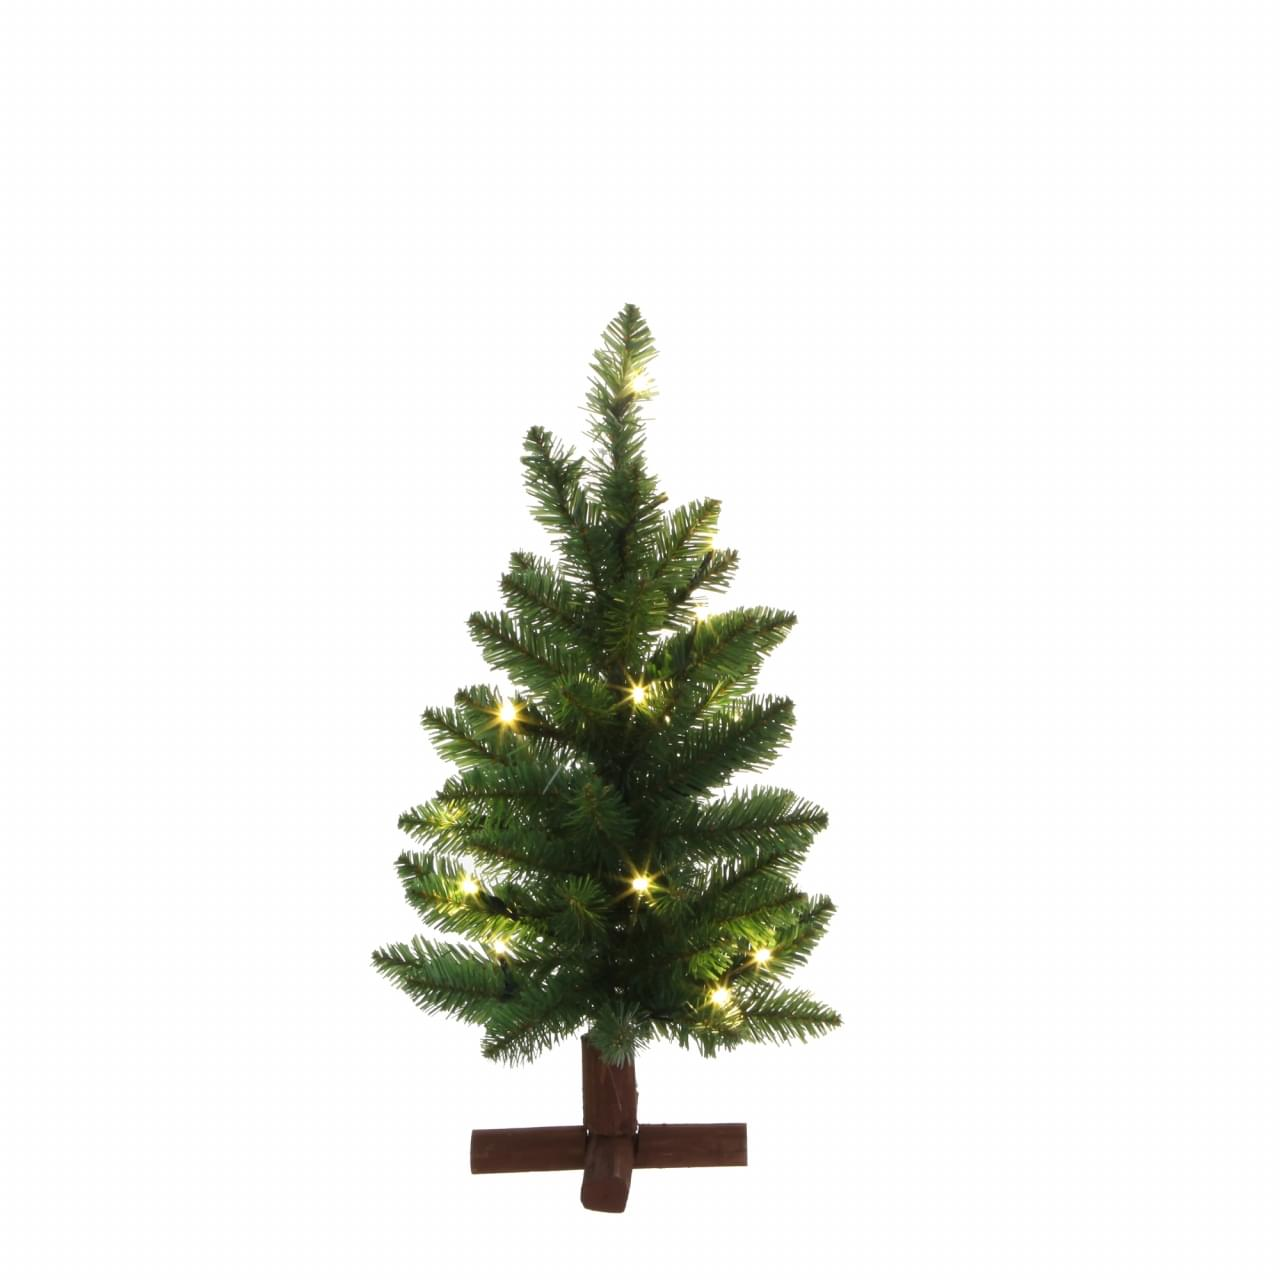 Triumph Tree Kerstboom